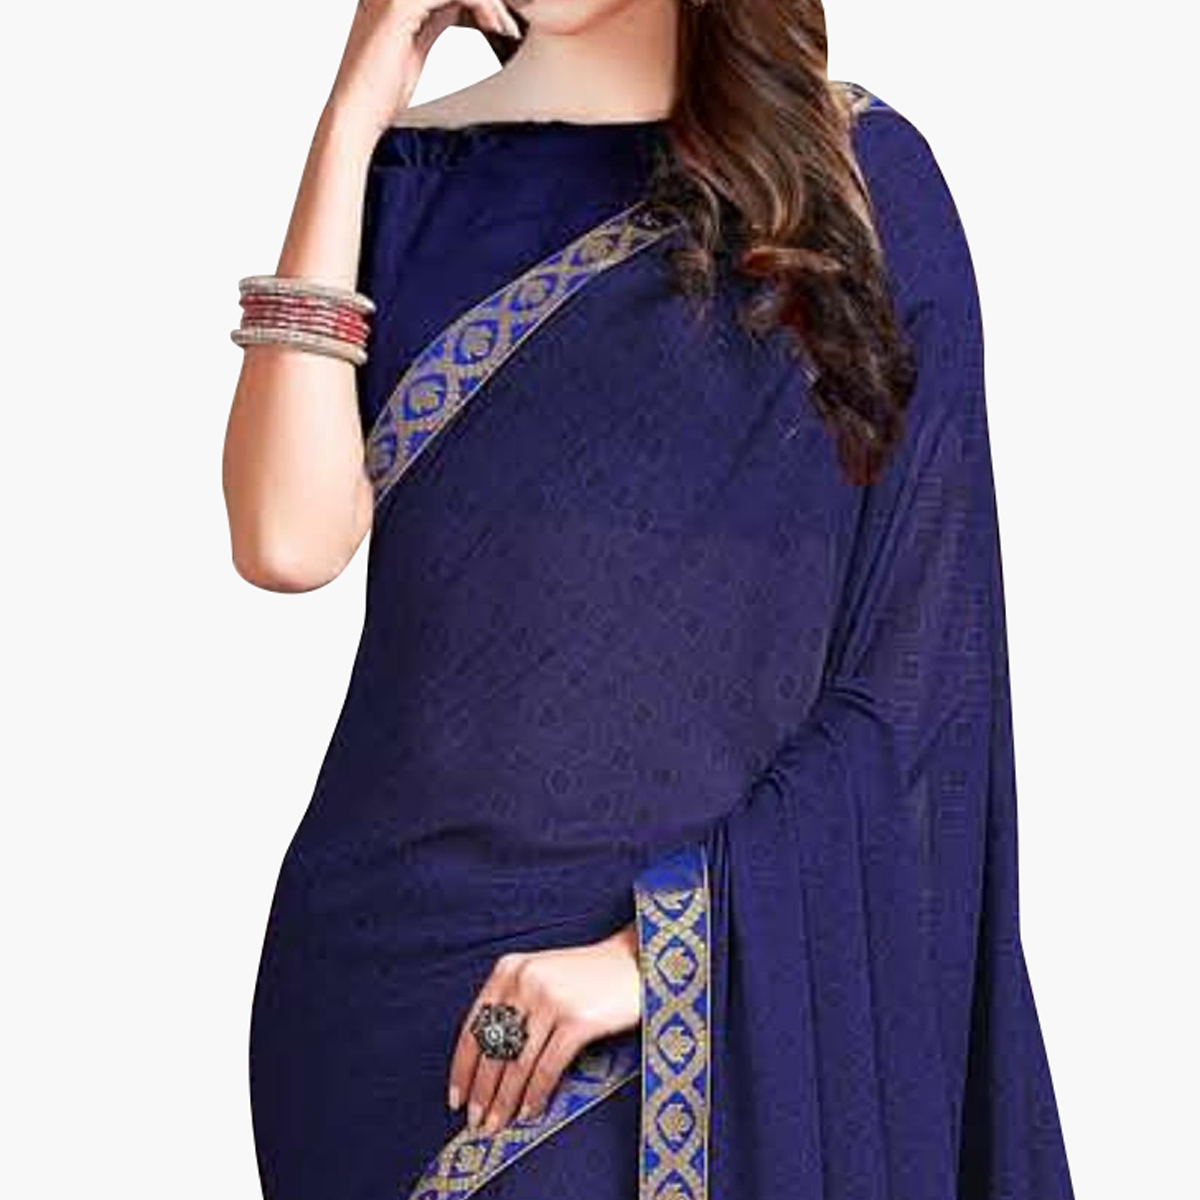 Elegant Navy Blue Colored Casual Wear Printed Georgette Saree With Jacquard Lace Border